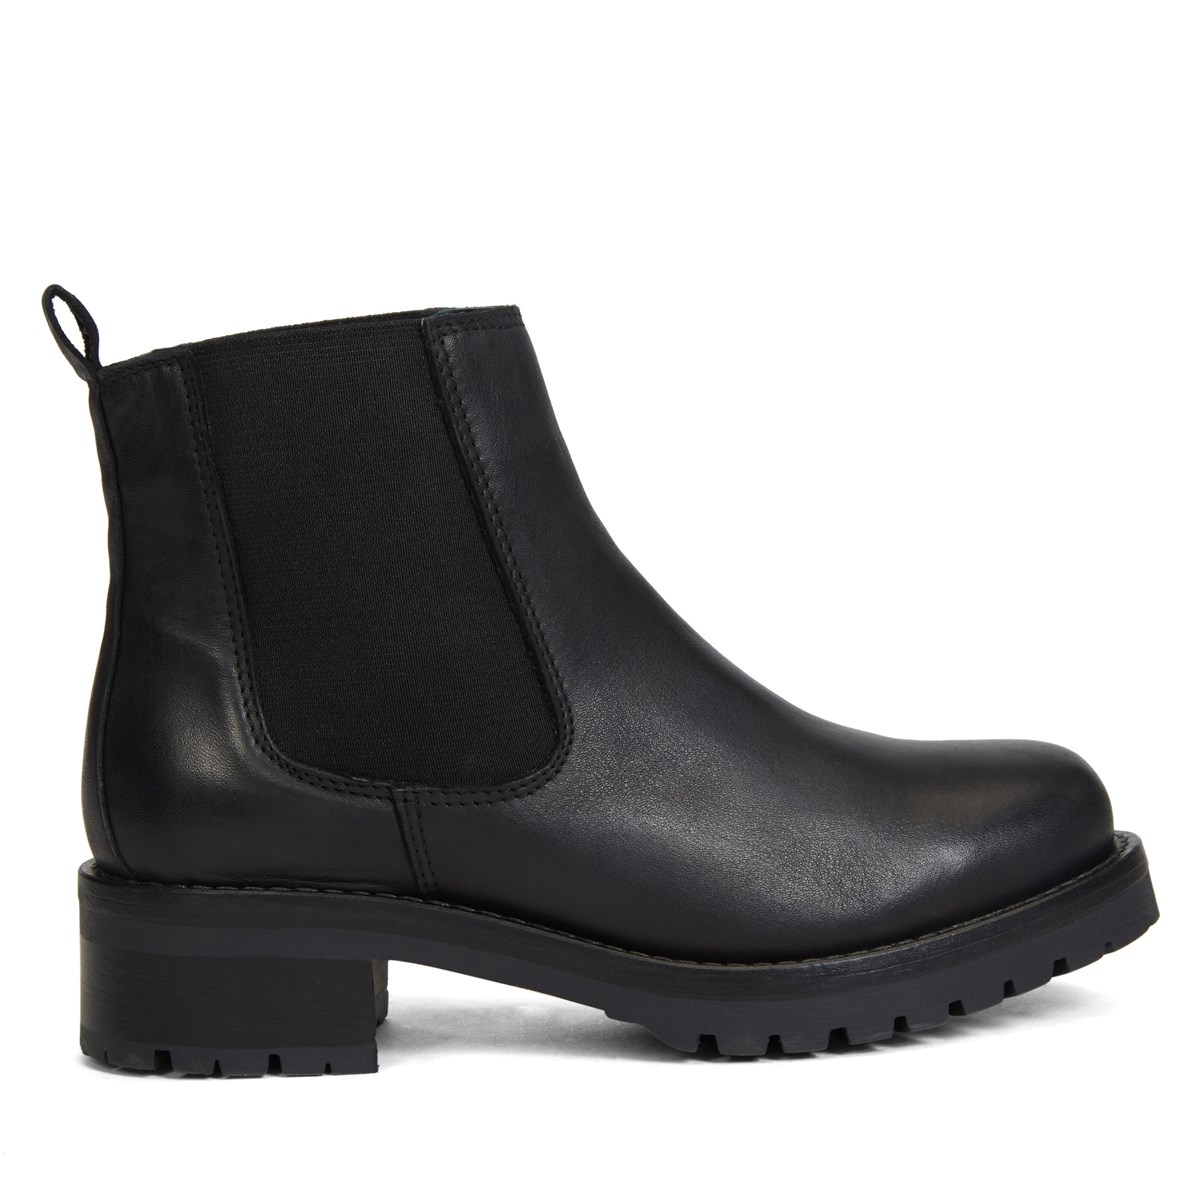 Women's Beatrice Boots in Black